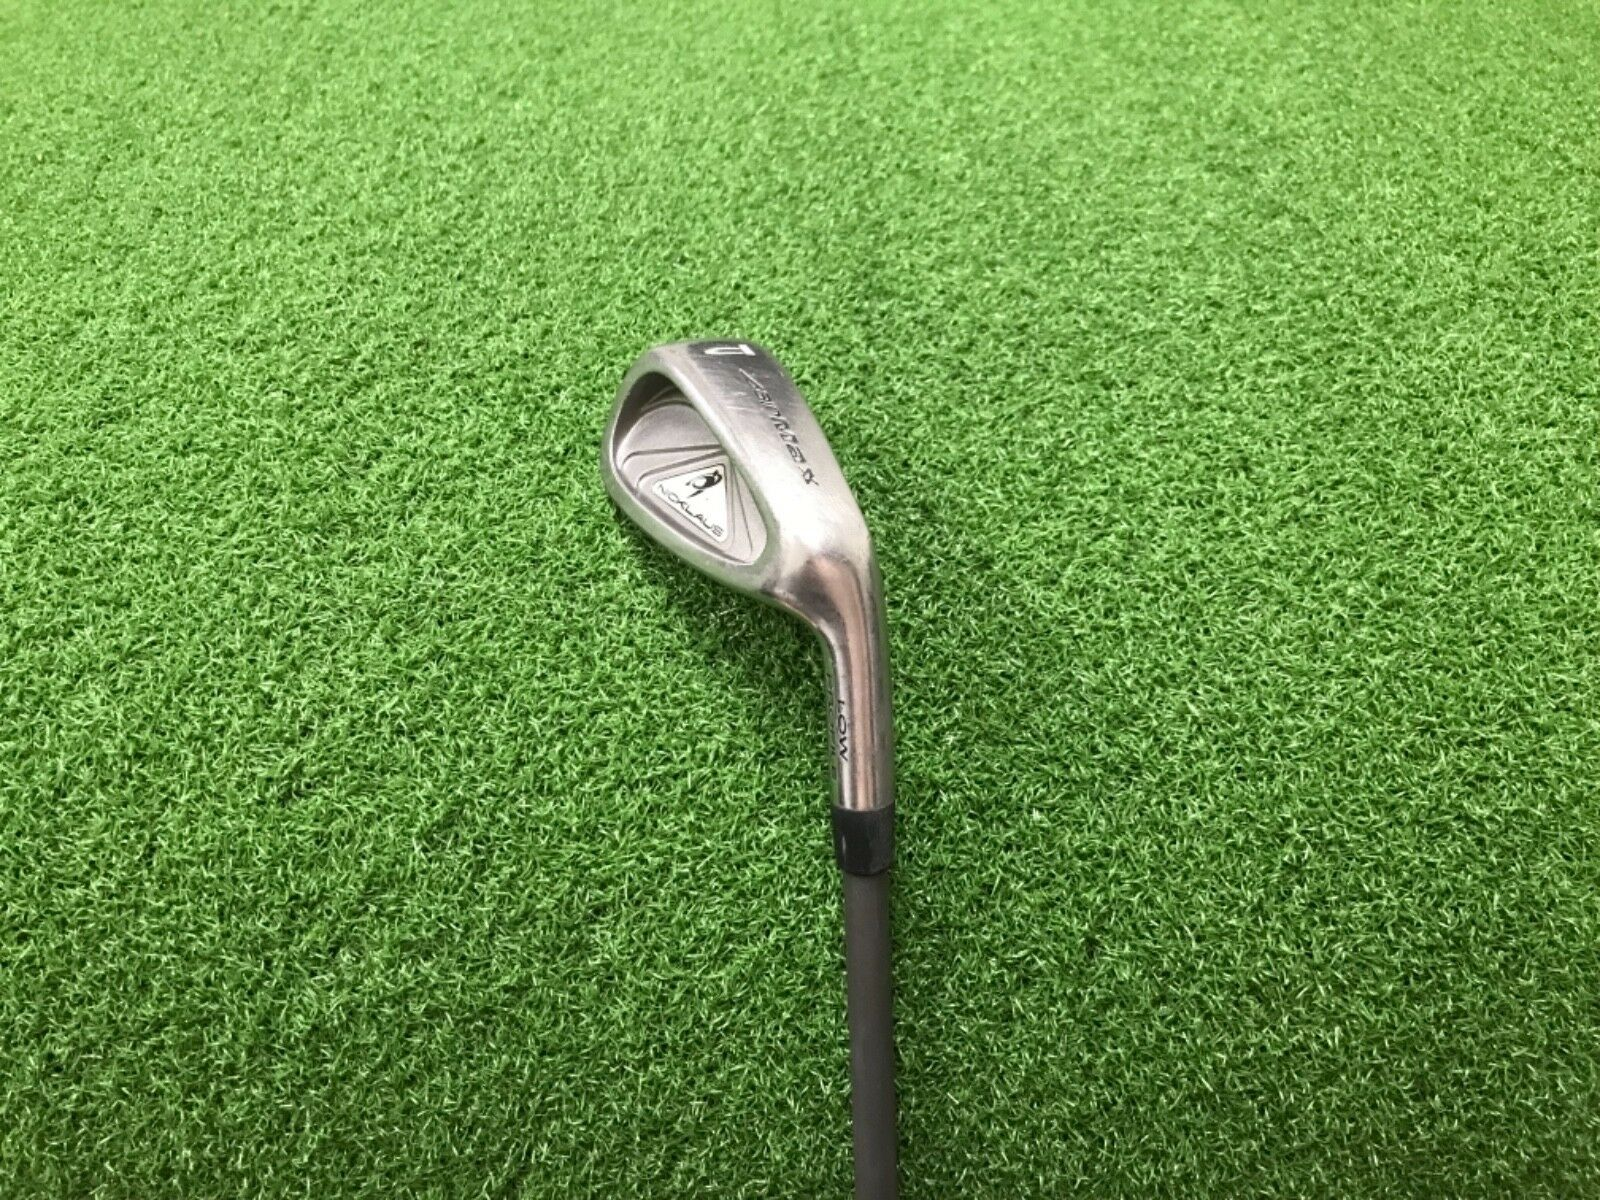 NICE Nicklaus Golf AIRMAX Låg Profil PITCHING WEDGE Höger Grafit SENIOR 70-79